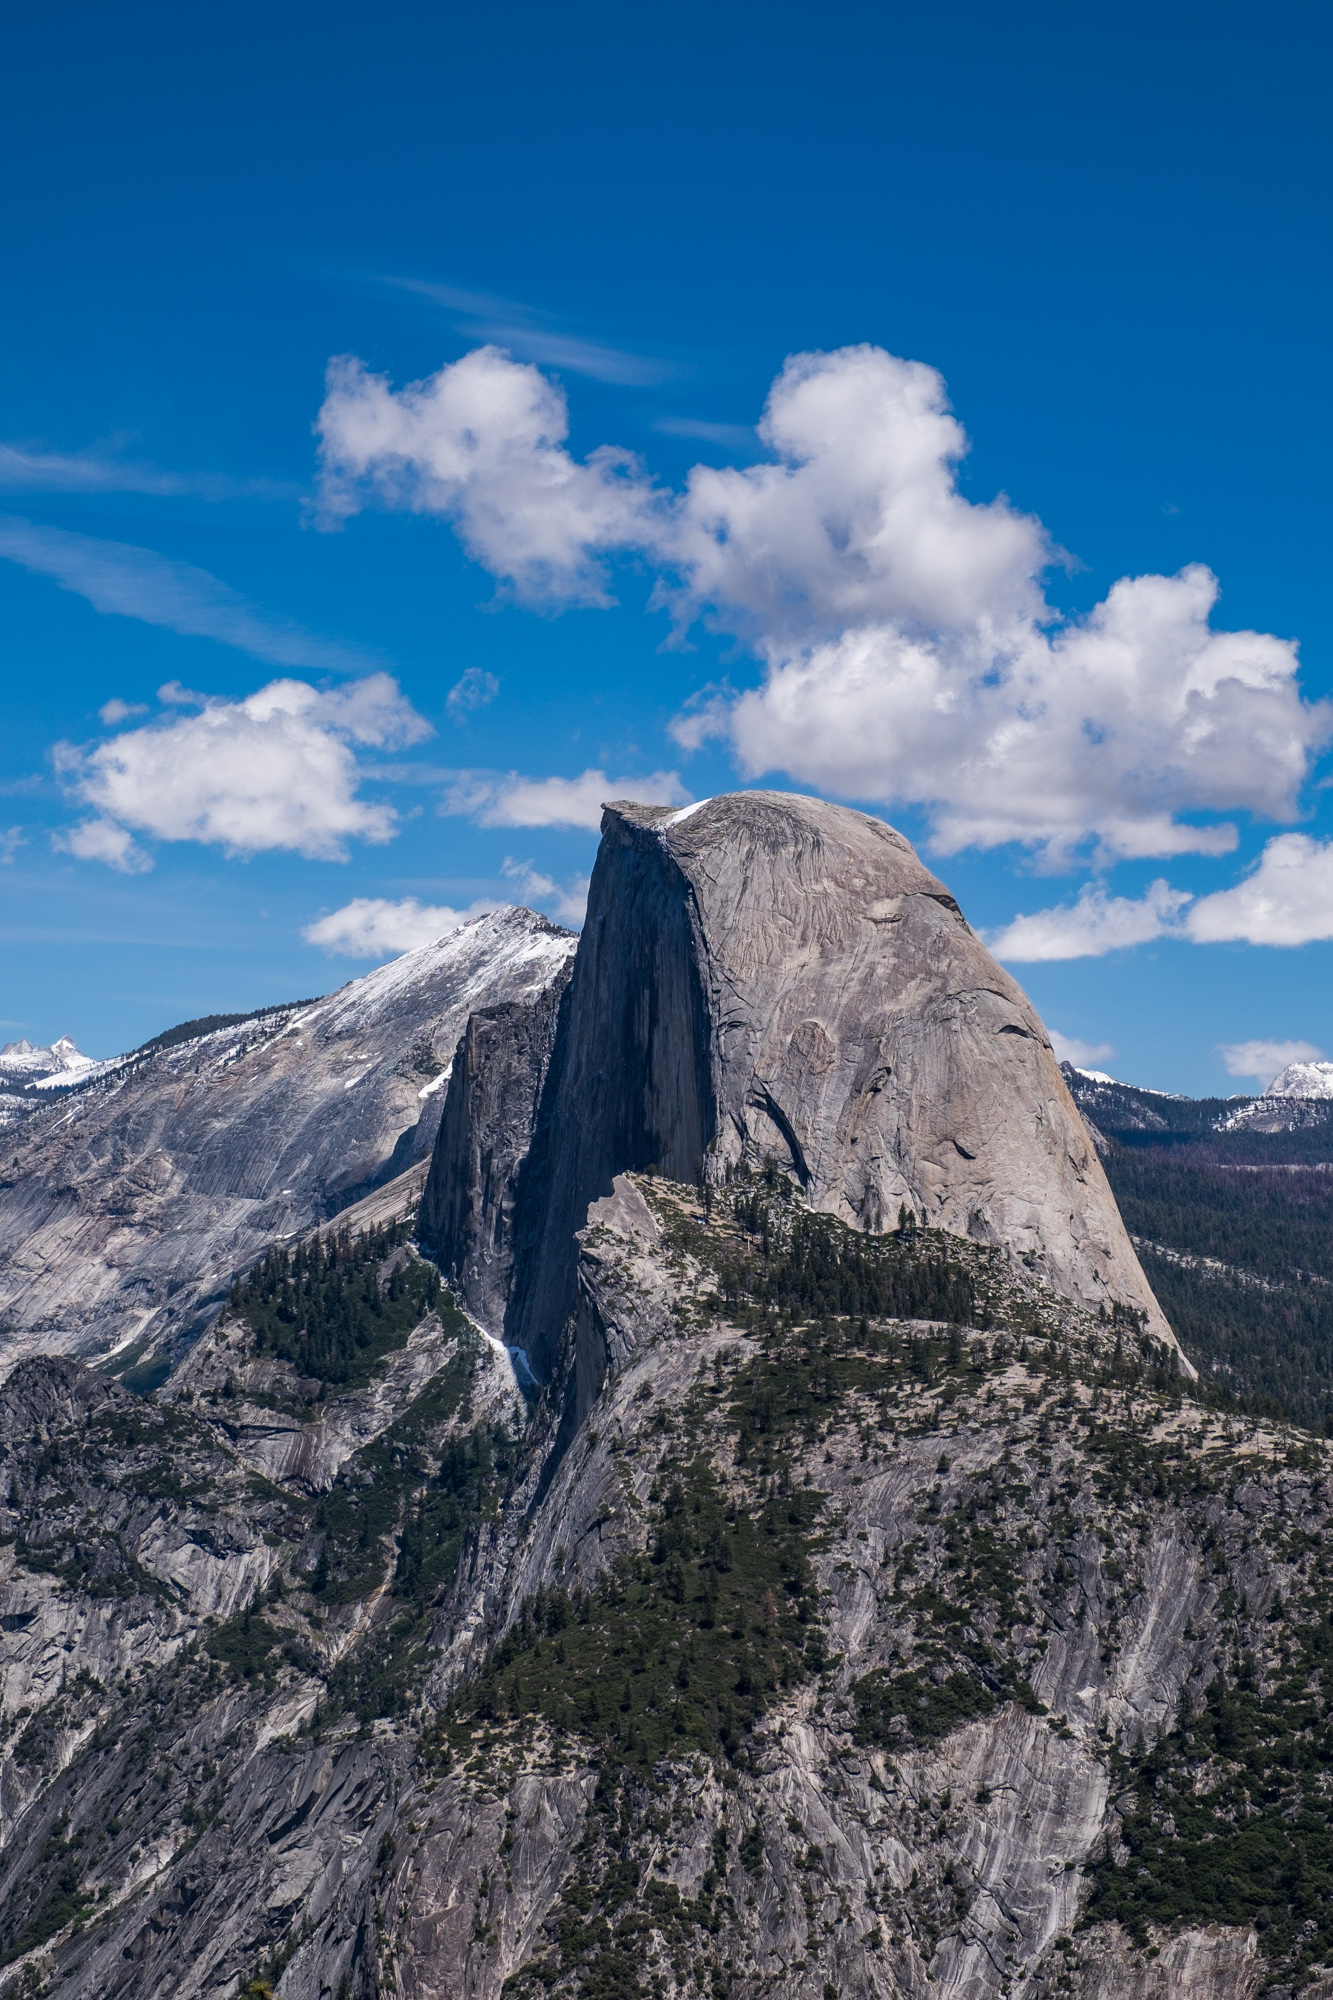 A view of Half Dome from Glacier Point on a sunny day.